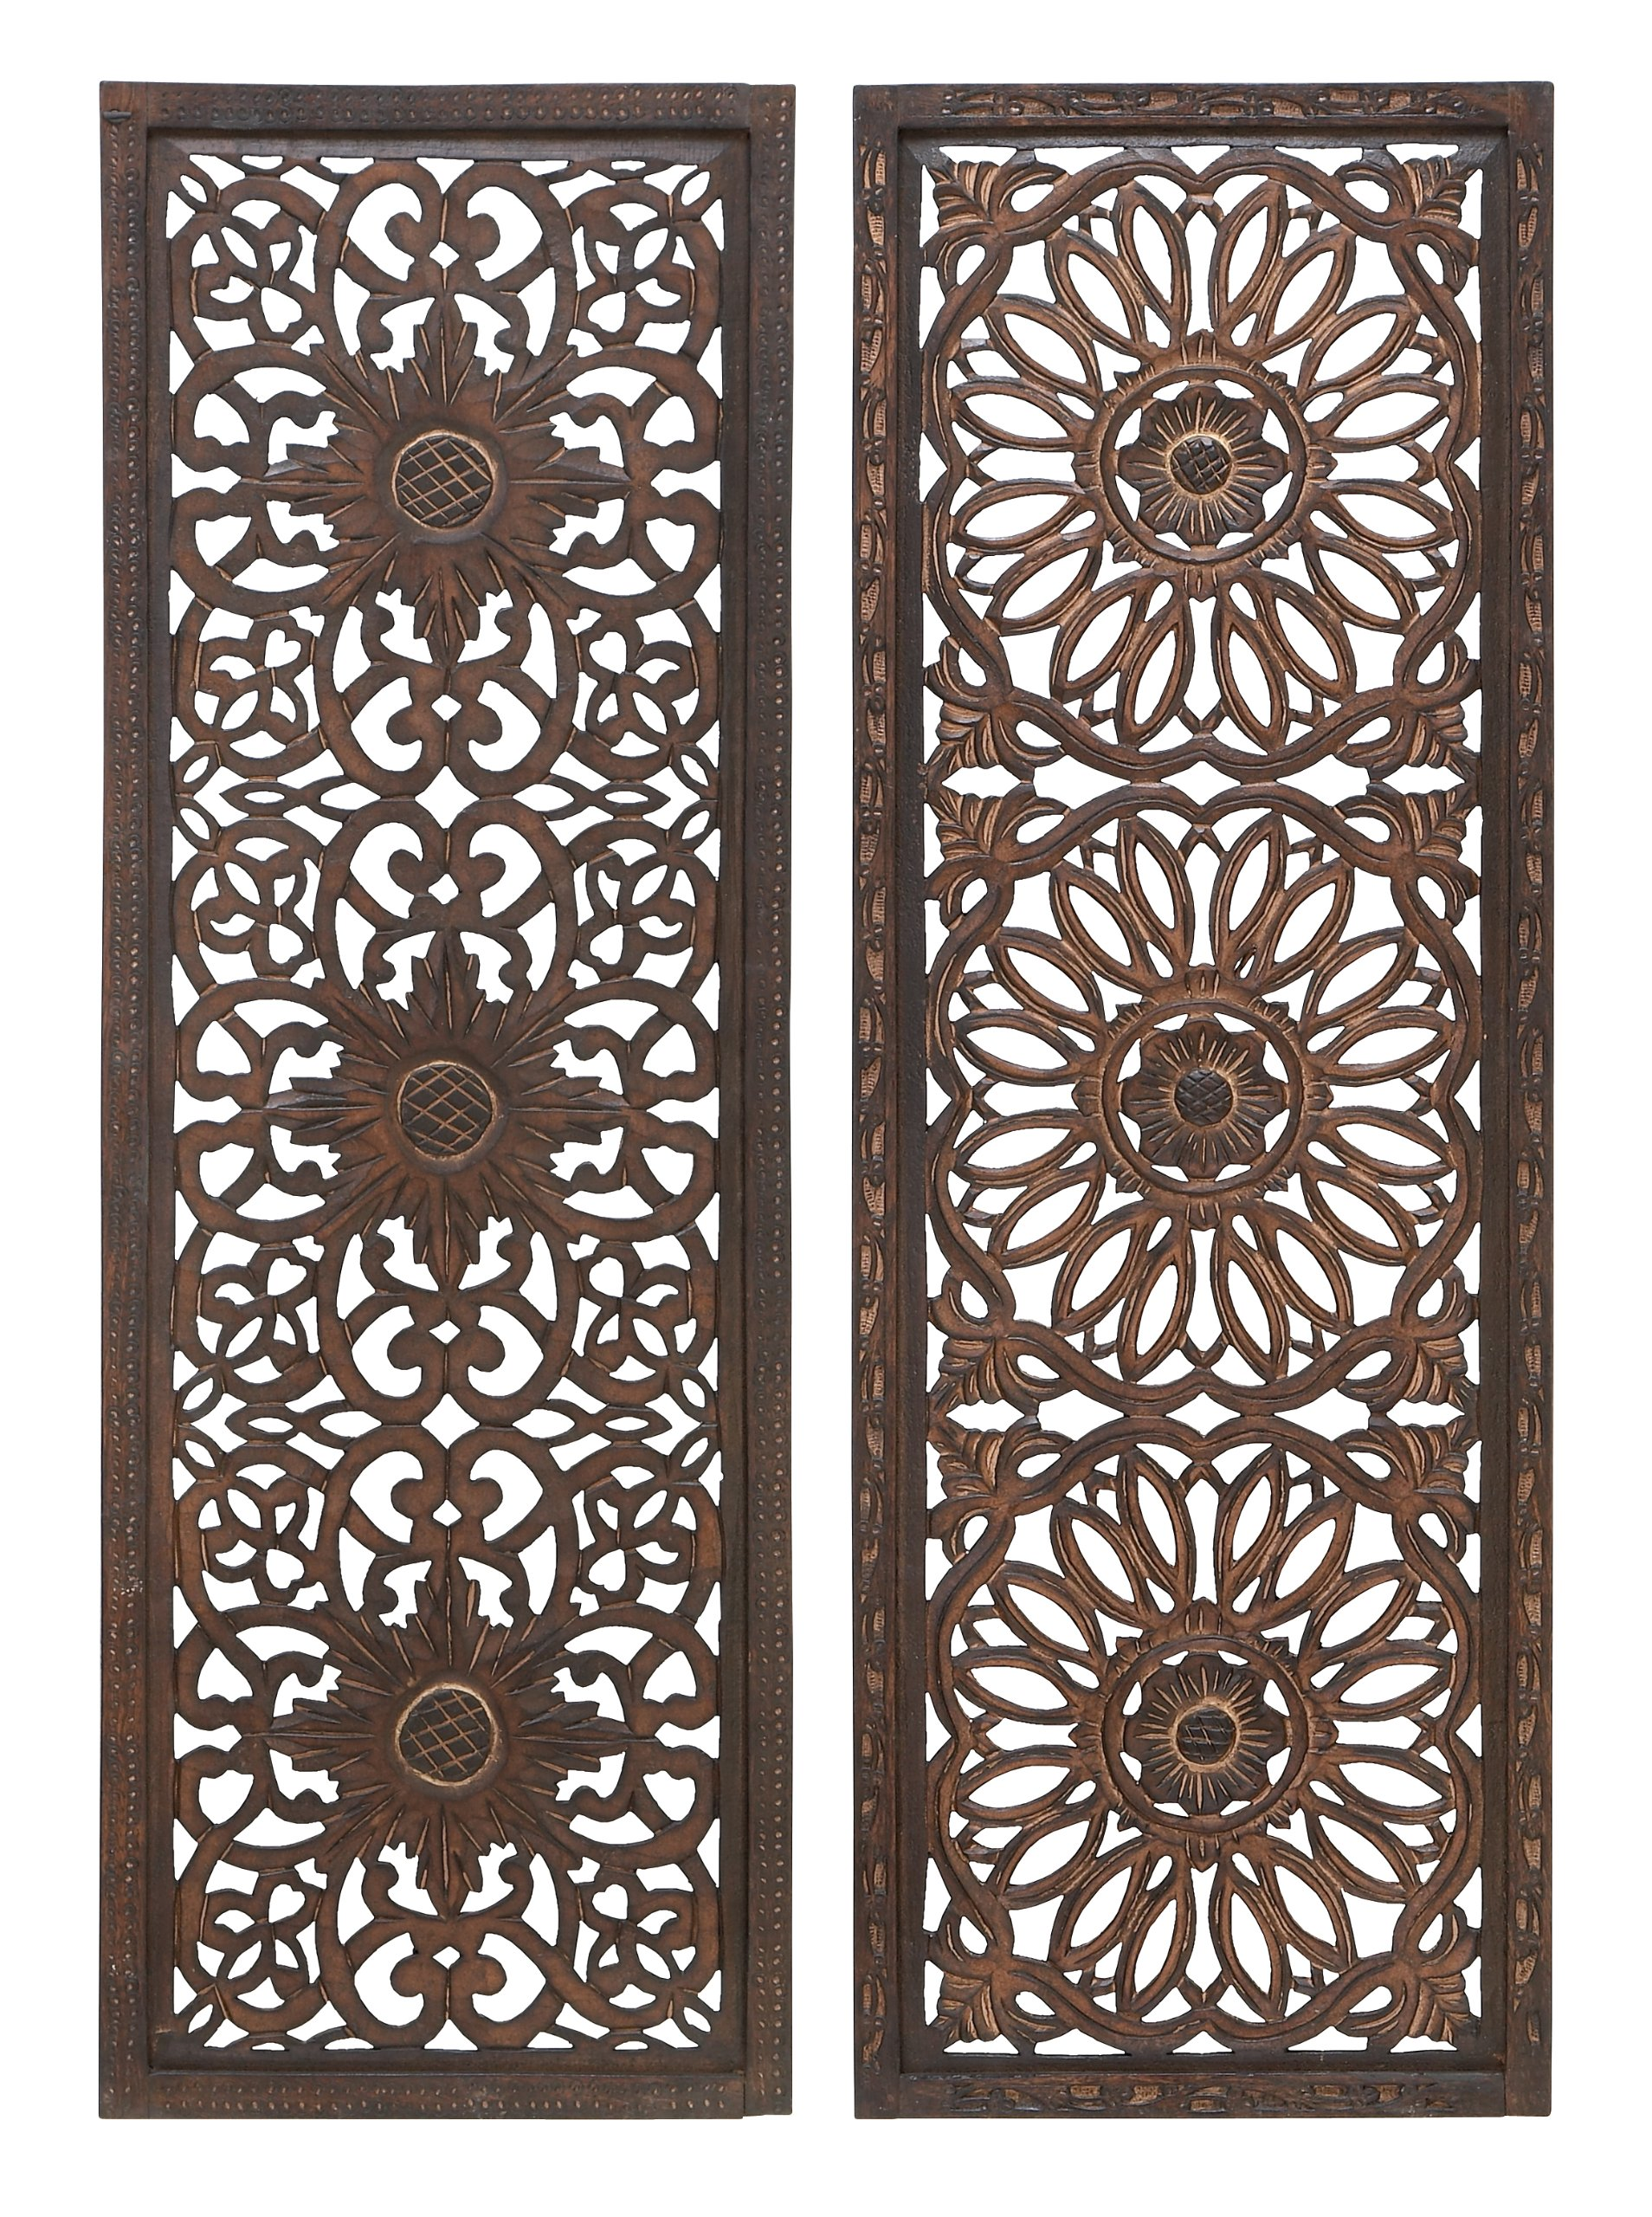 Deco 79 Set of 2 Wooden Wall Panels by Deco 79